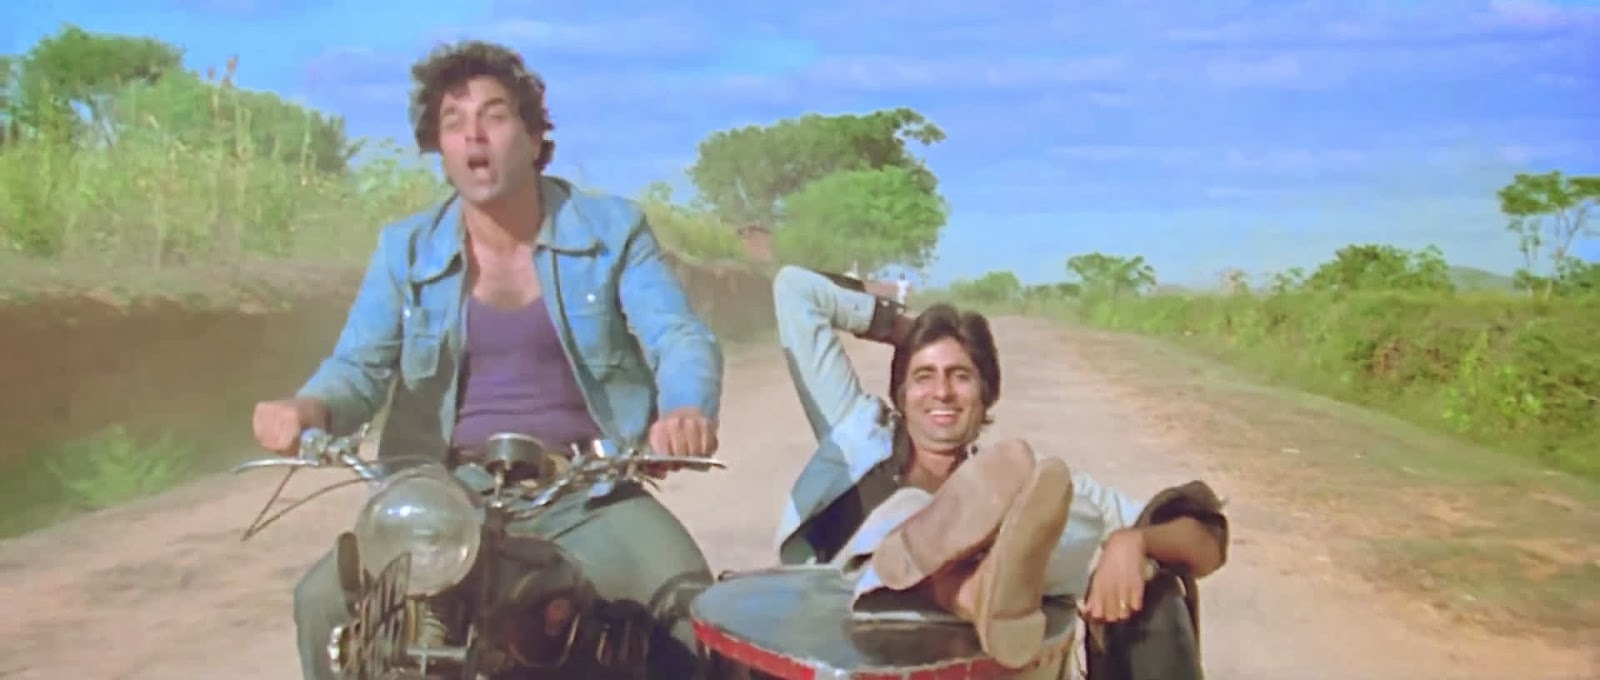 Perhaps the most enduring buddy flick was Sholay (1975), starring Amitabh Bachchan and Dharmendra